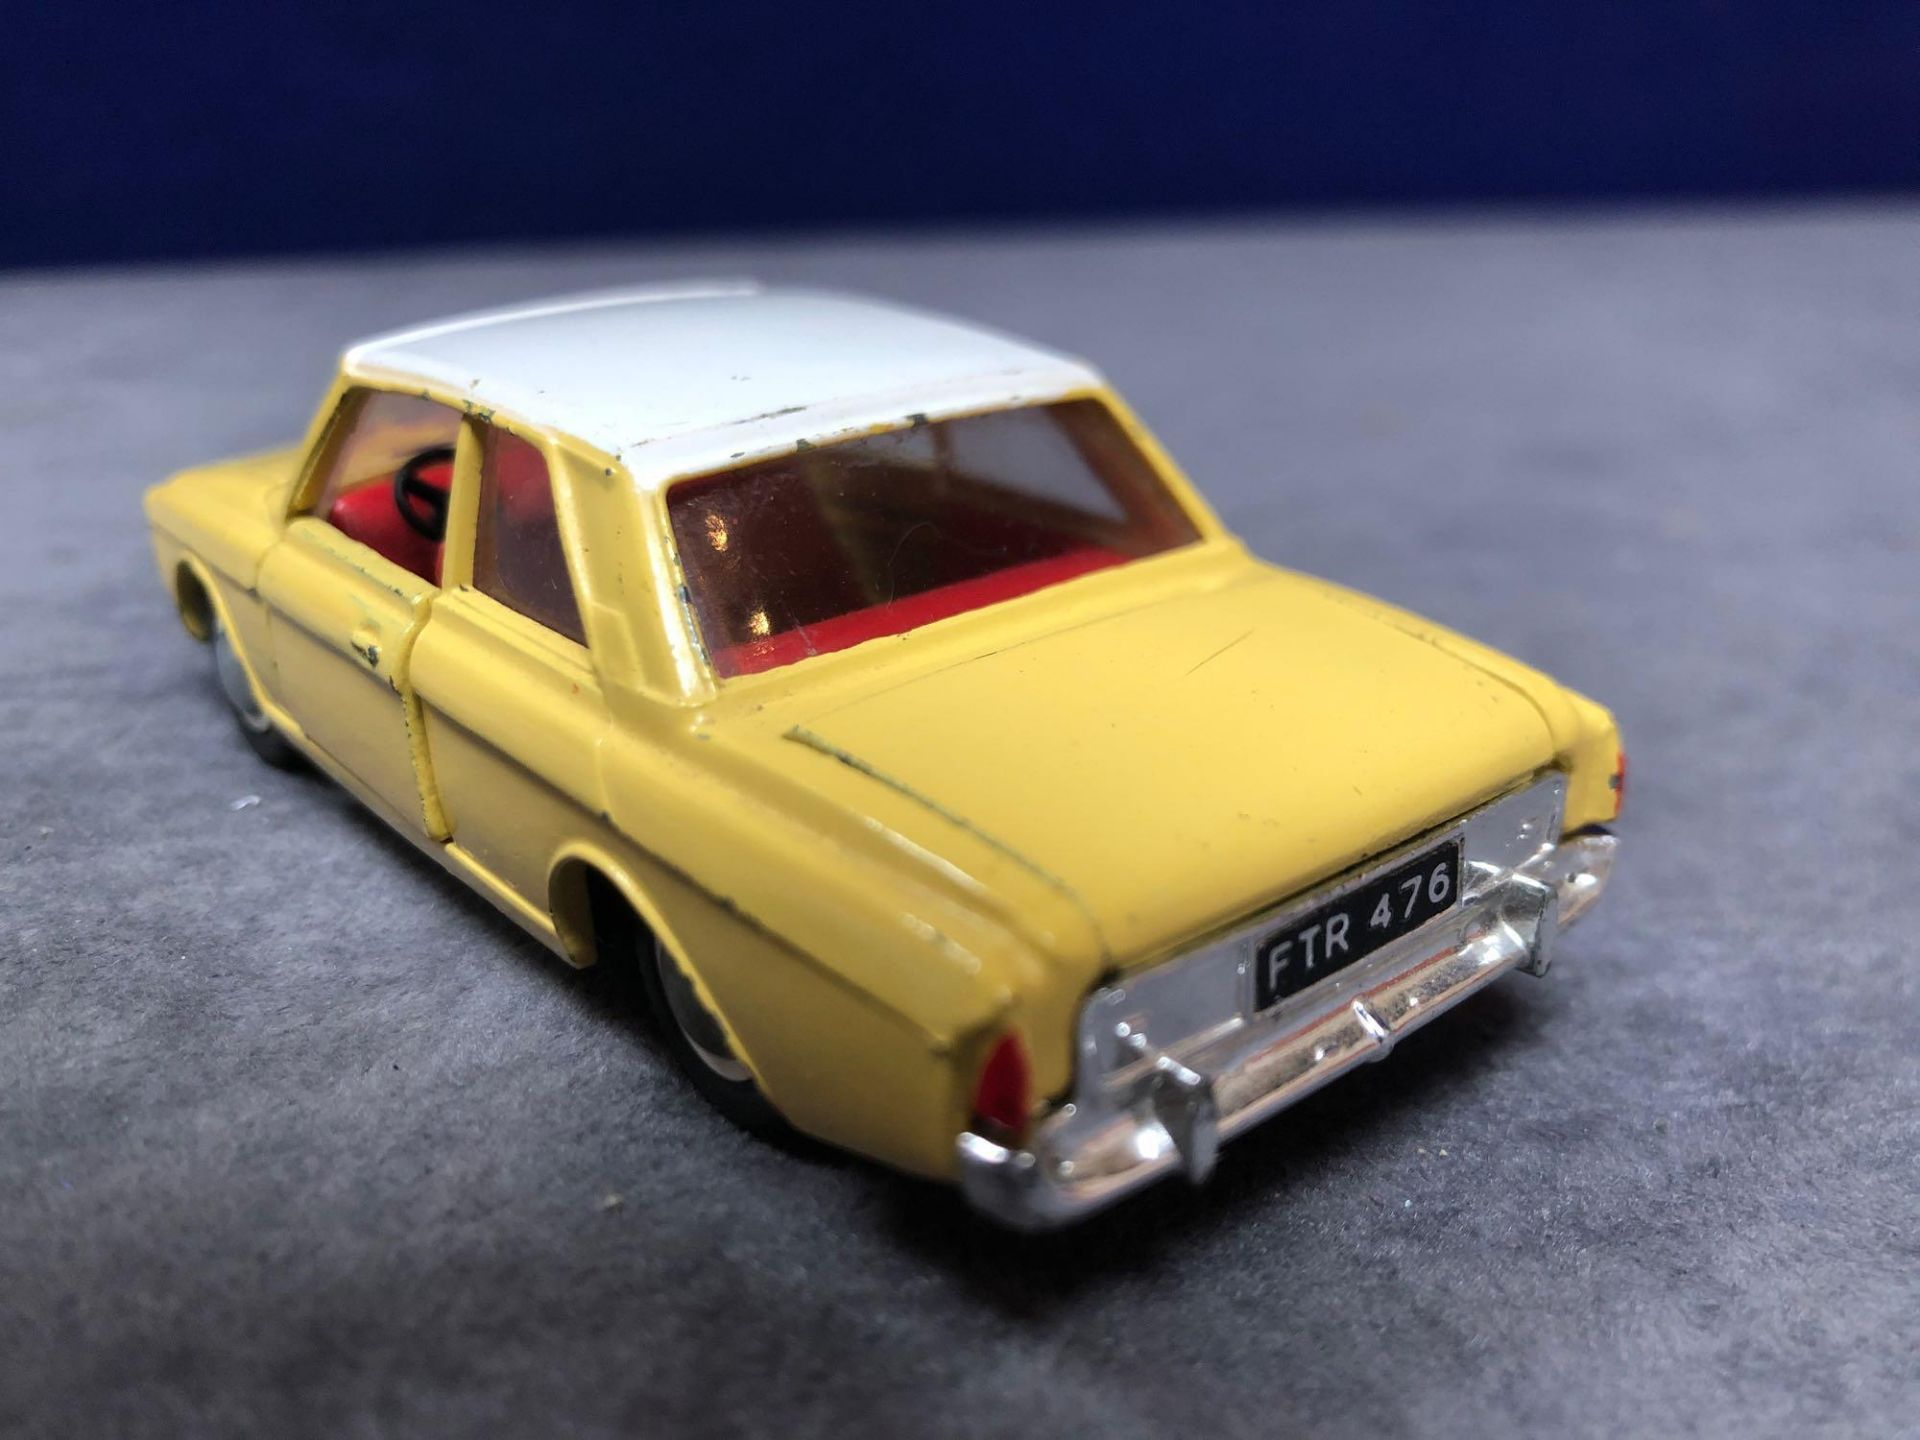 Dinky #154 Ford Taunus 17m Yellow/White - Red Interior 1966 - 1969 Unboxed Very Good Condition - Image 3 of 4